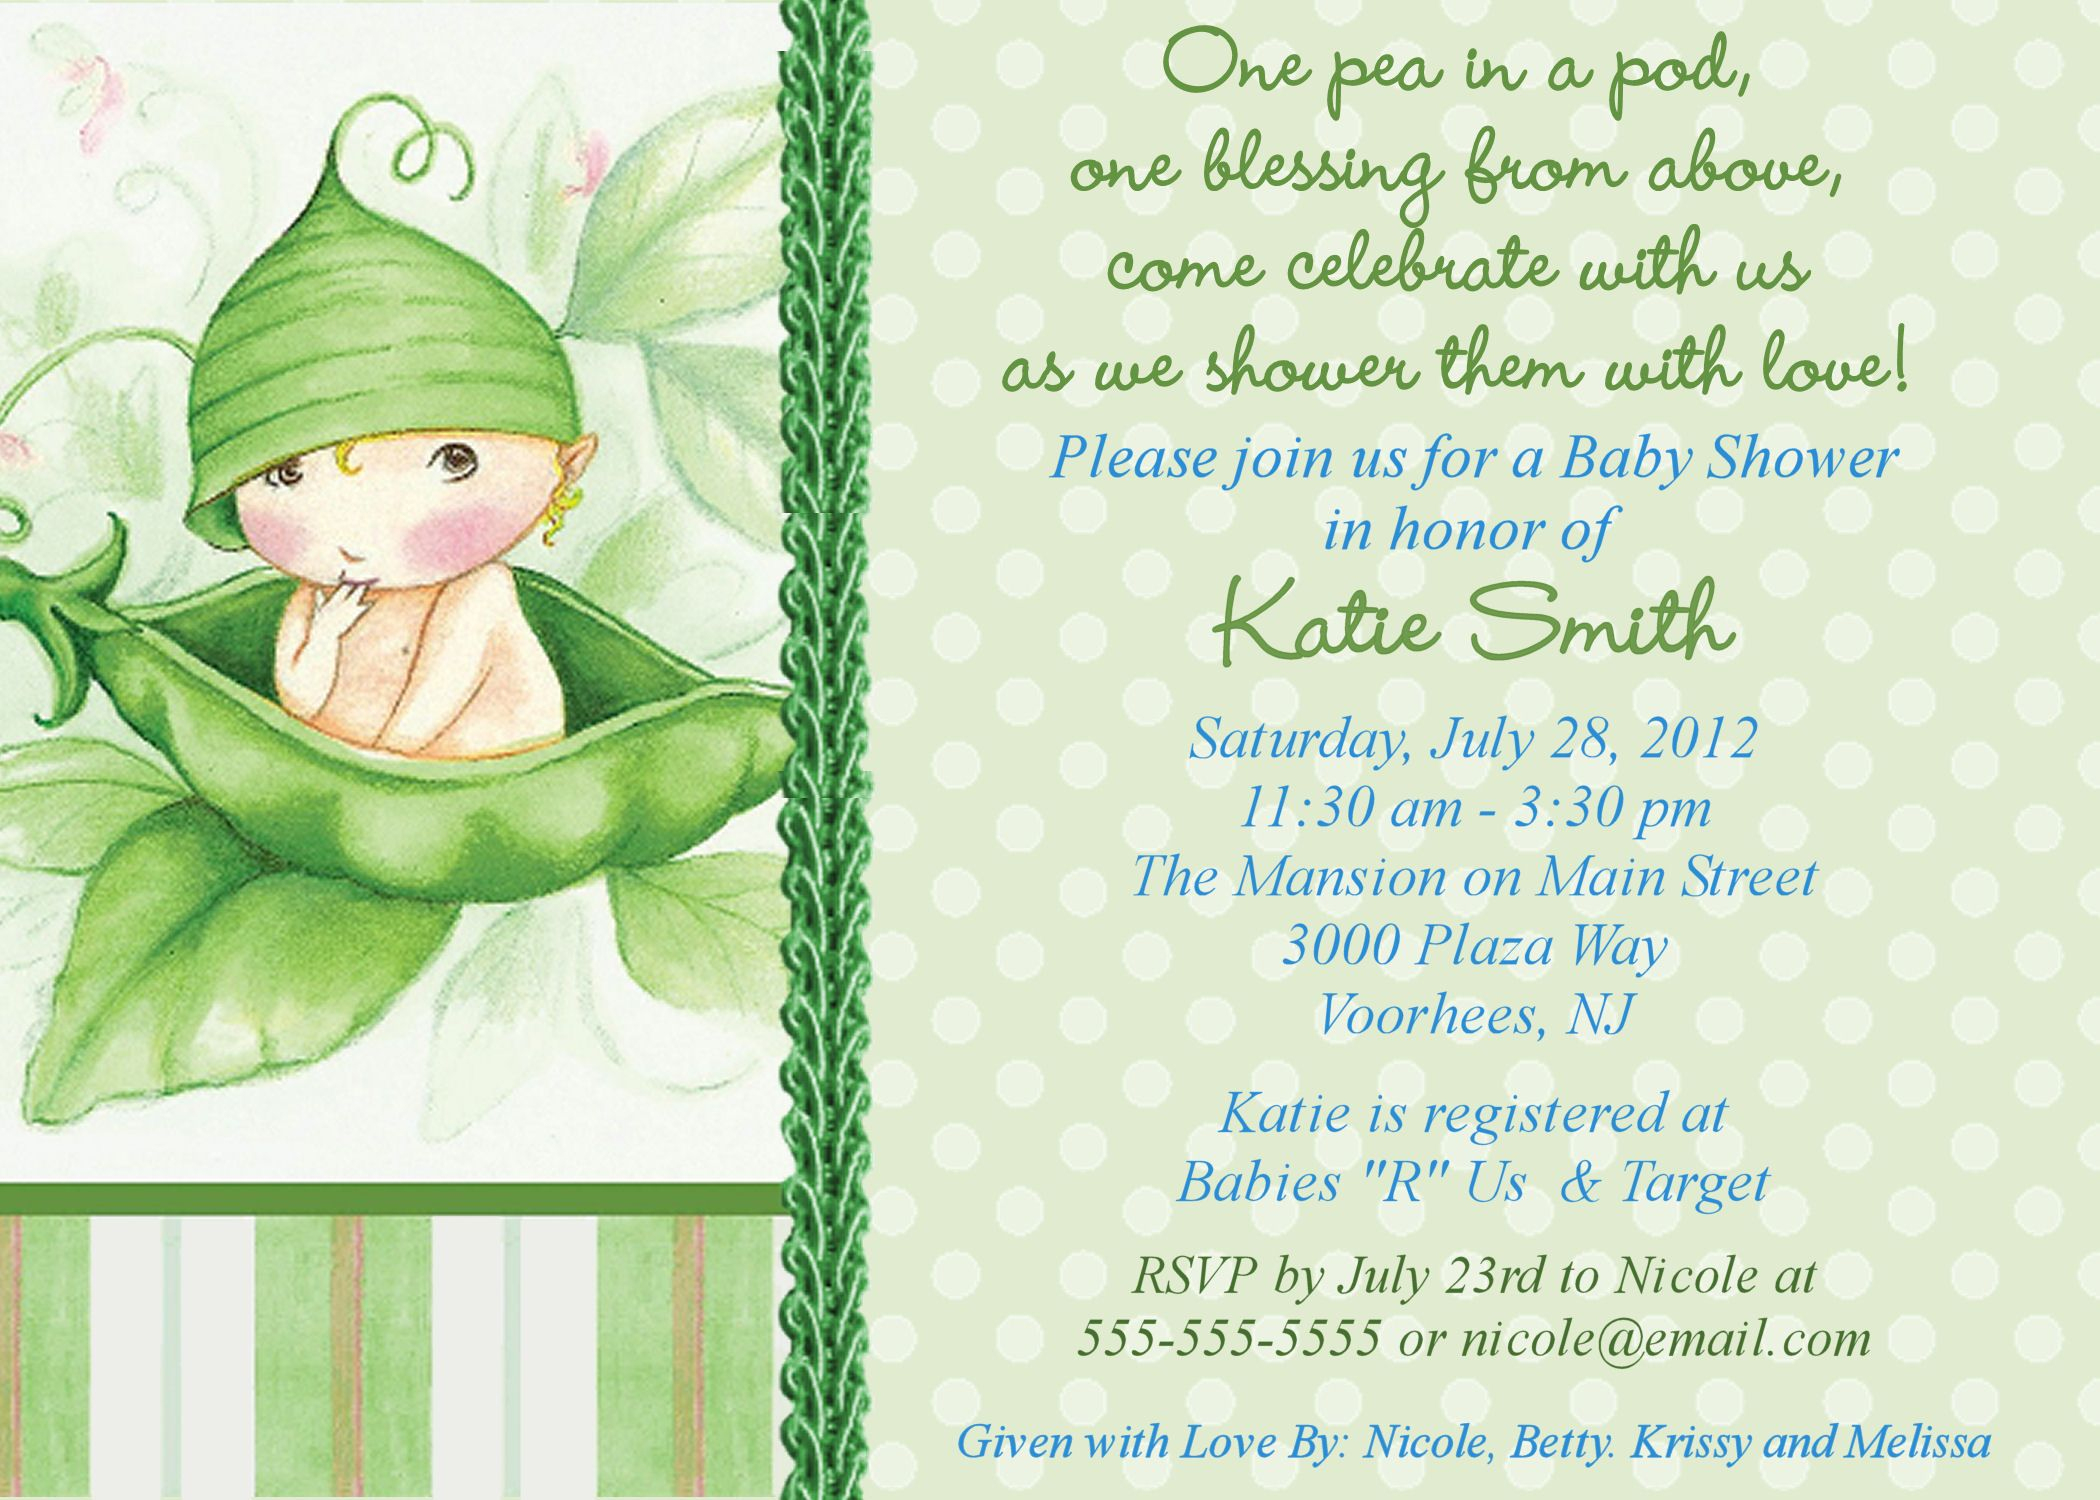 Image For Baby Shower Invitations Online Free Printable - Baby Shower Cards Online Free Printable